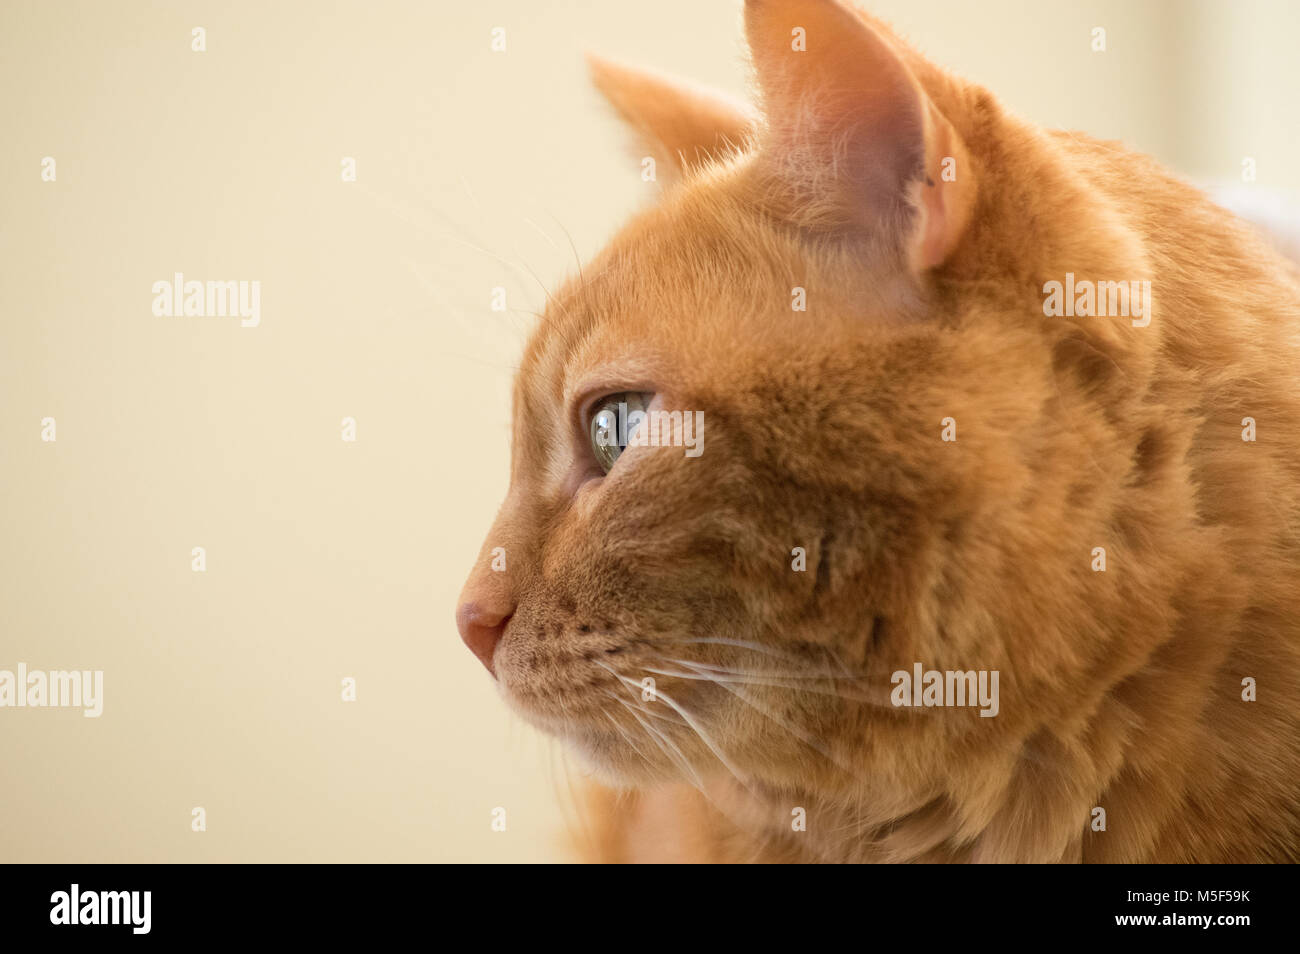 Side view closeup of face of orange tabby cat with eyes open - Stock Image